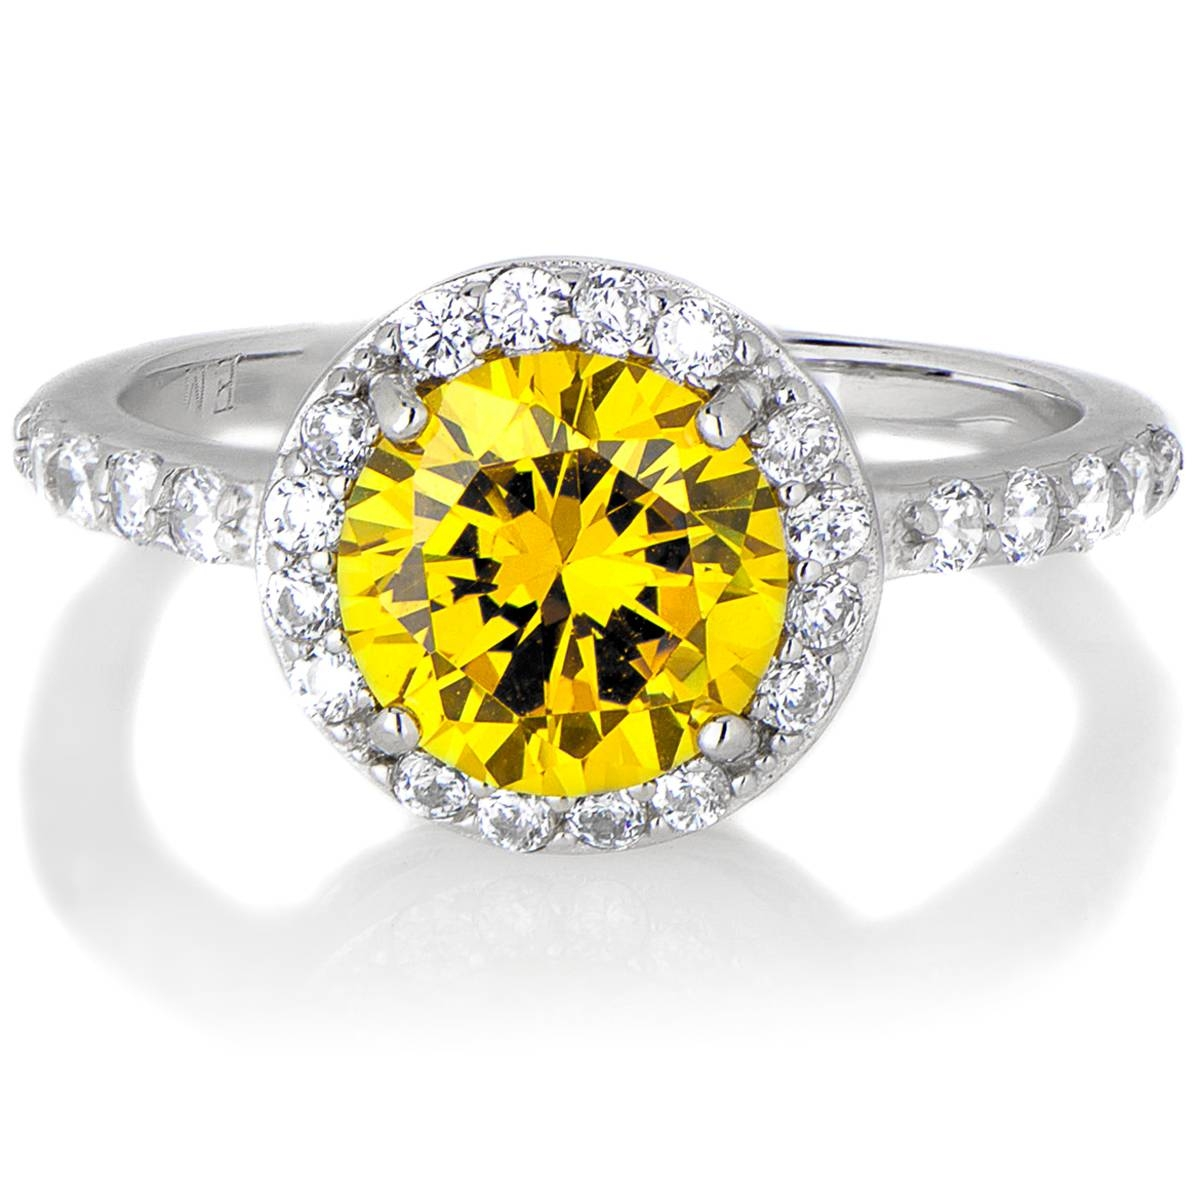 Silvertone November Imitation Birthstone Ring – Citrine Cz Inside November Birthstone Engagement Rings (View 11 of 15)